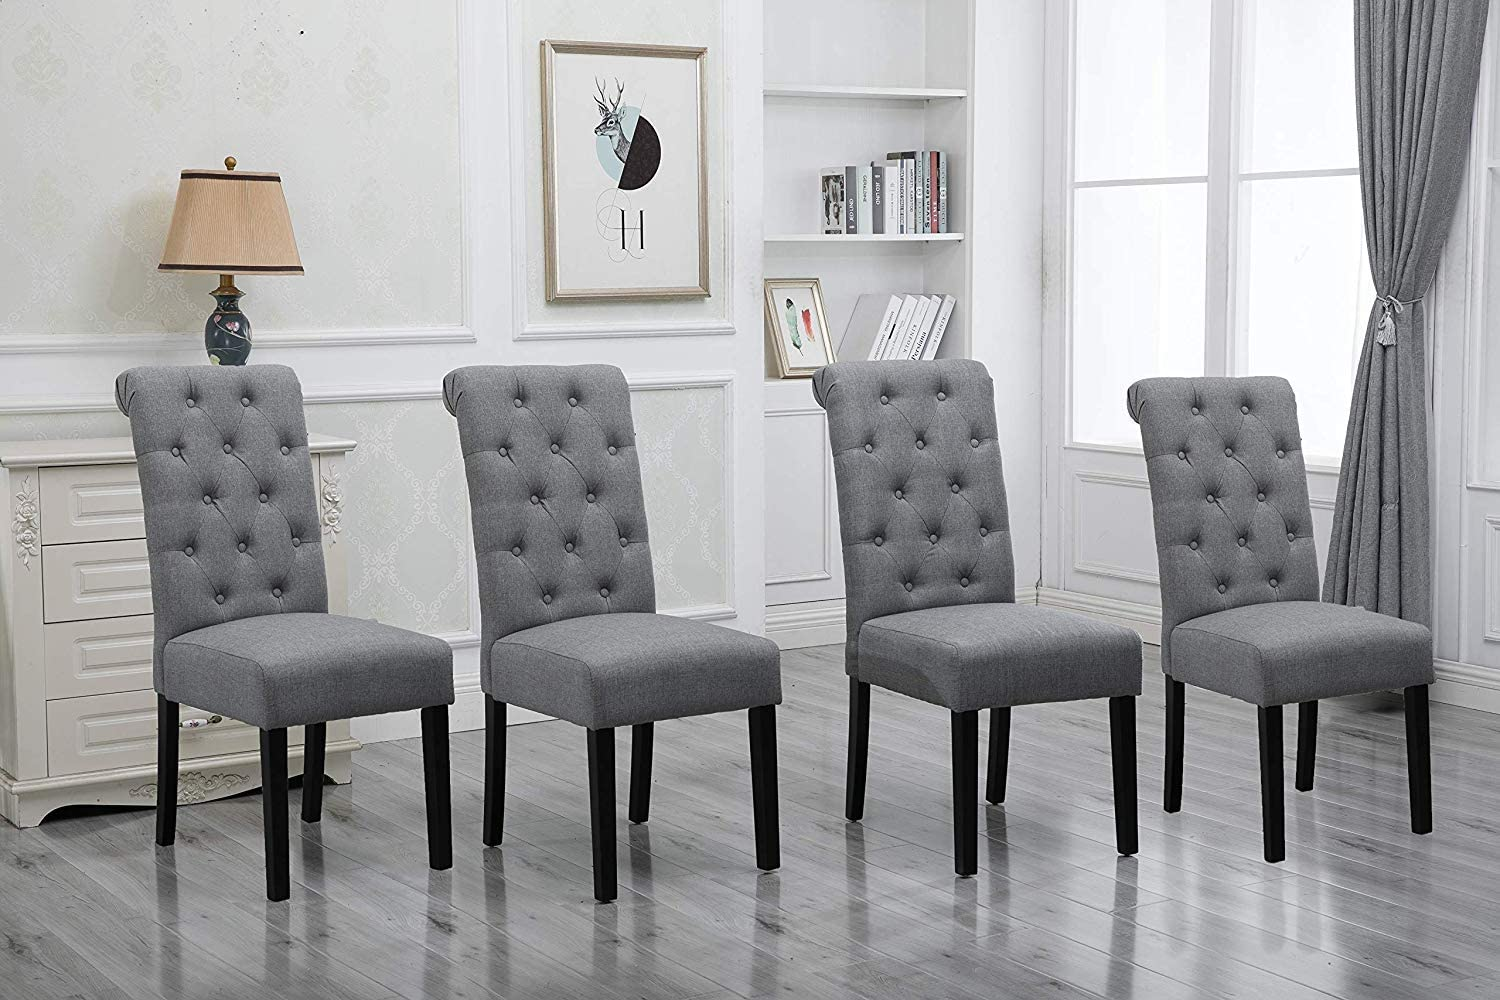 HomeSailing Comfortable Kitchen Dining Room Chairs Only Set of 4 Grey  Fabric Upholstered High Back Armless Chairs Side Chairs for Bedroom Living  Room